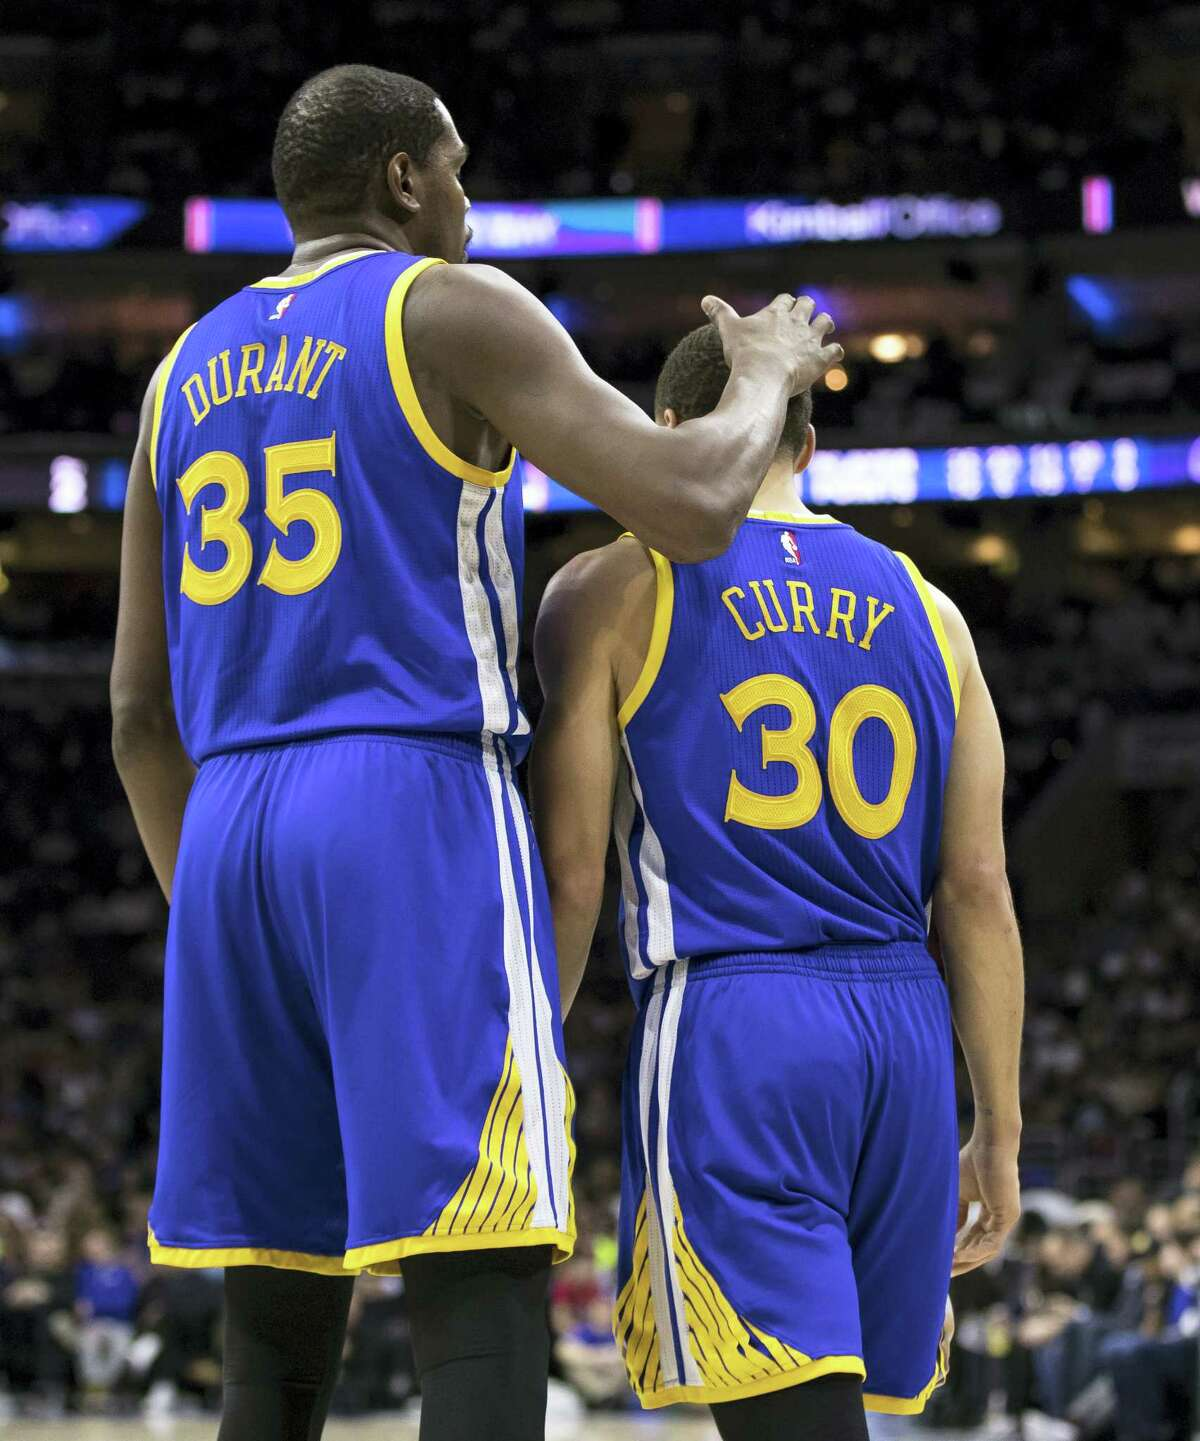 Golden State Warriors' Kevin Durant, left, pats Stephen Curry, right on the head after he misses the lay-up during the first half of an NBA basketball game against the Philadelphia 76ers on Feb. 27, 2017 in Philadelphia.